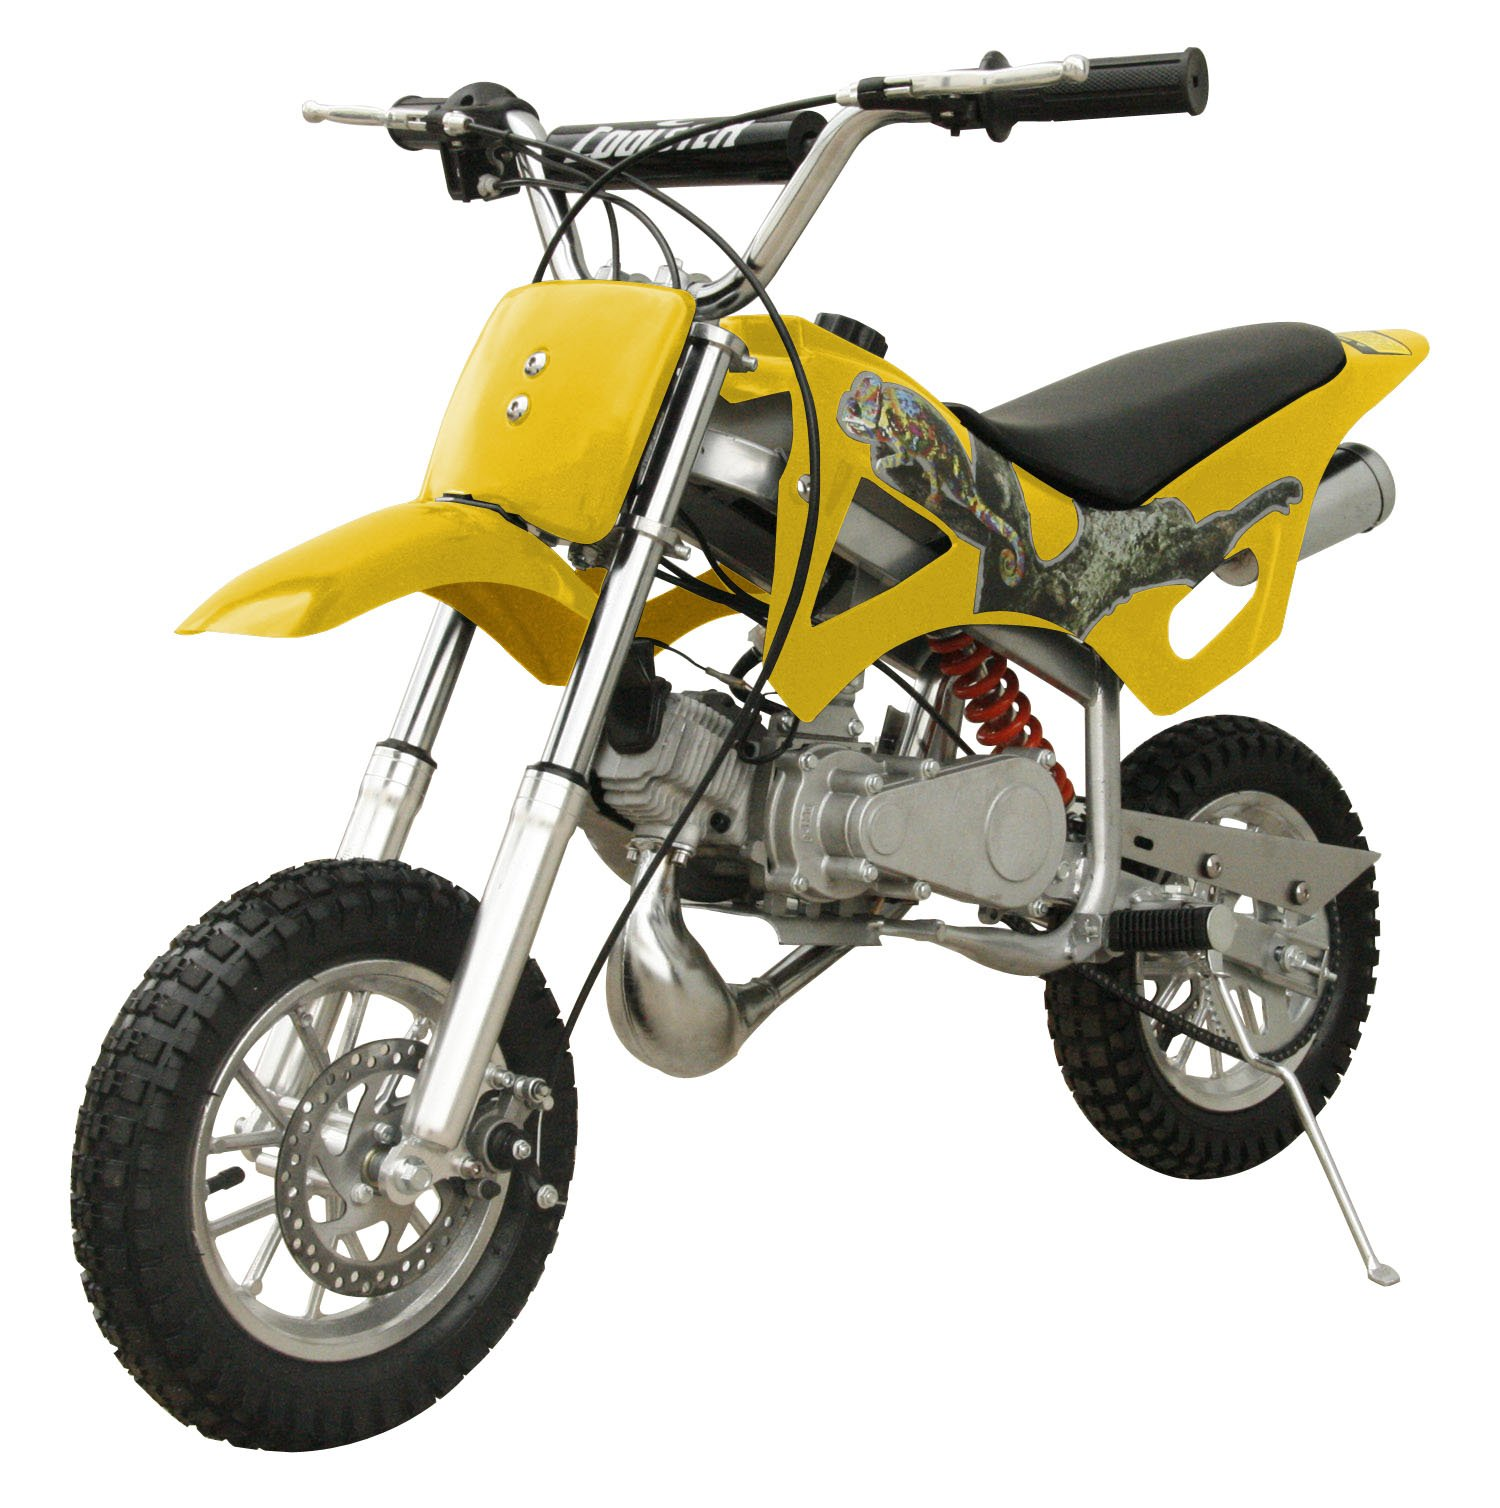 49cc 50cc 2-Stroke Gas Motorized Mini Dirt Pit Bike (Yellow) by Flying Horse